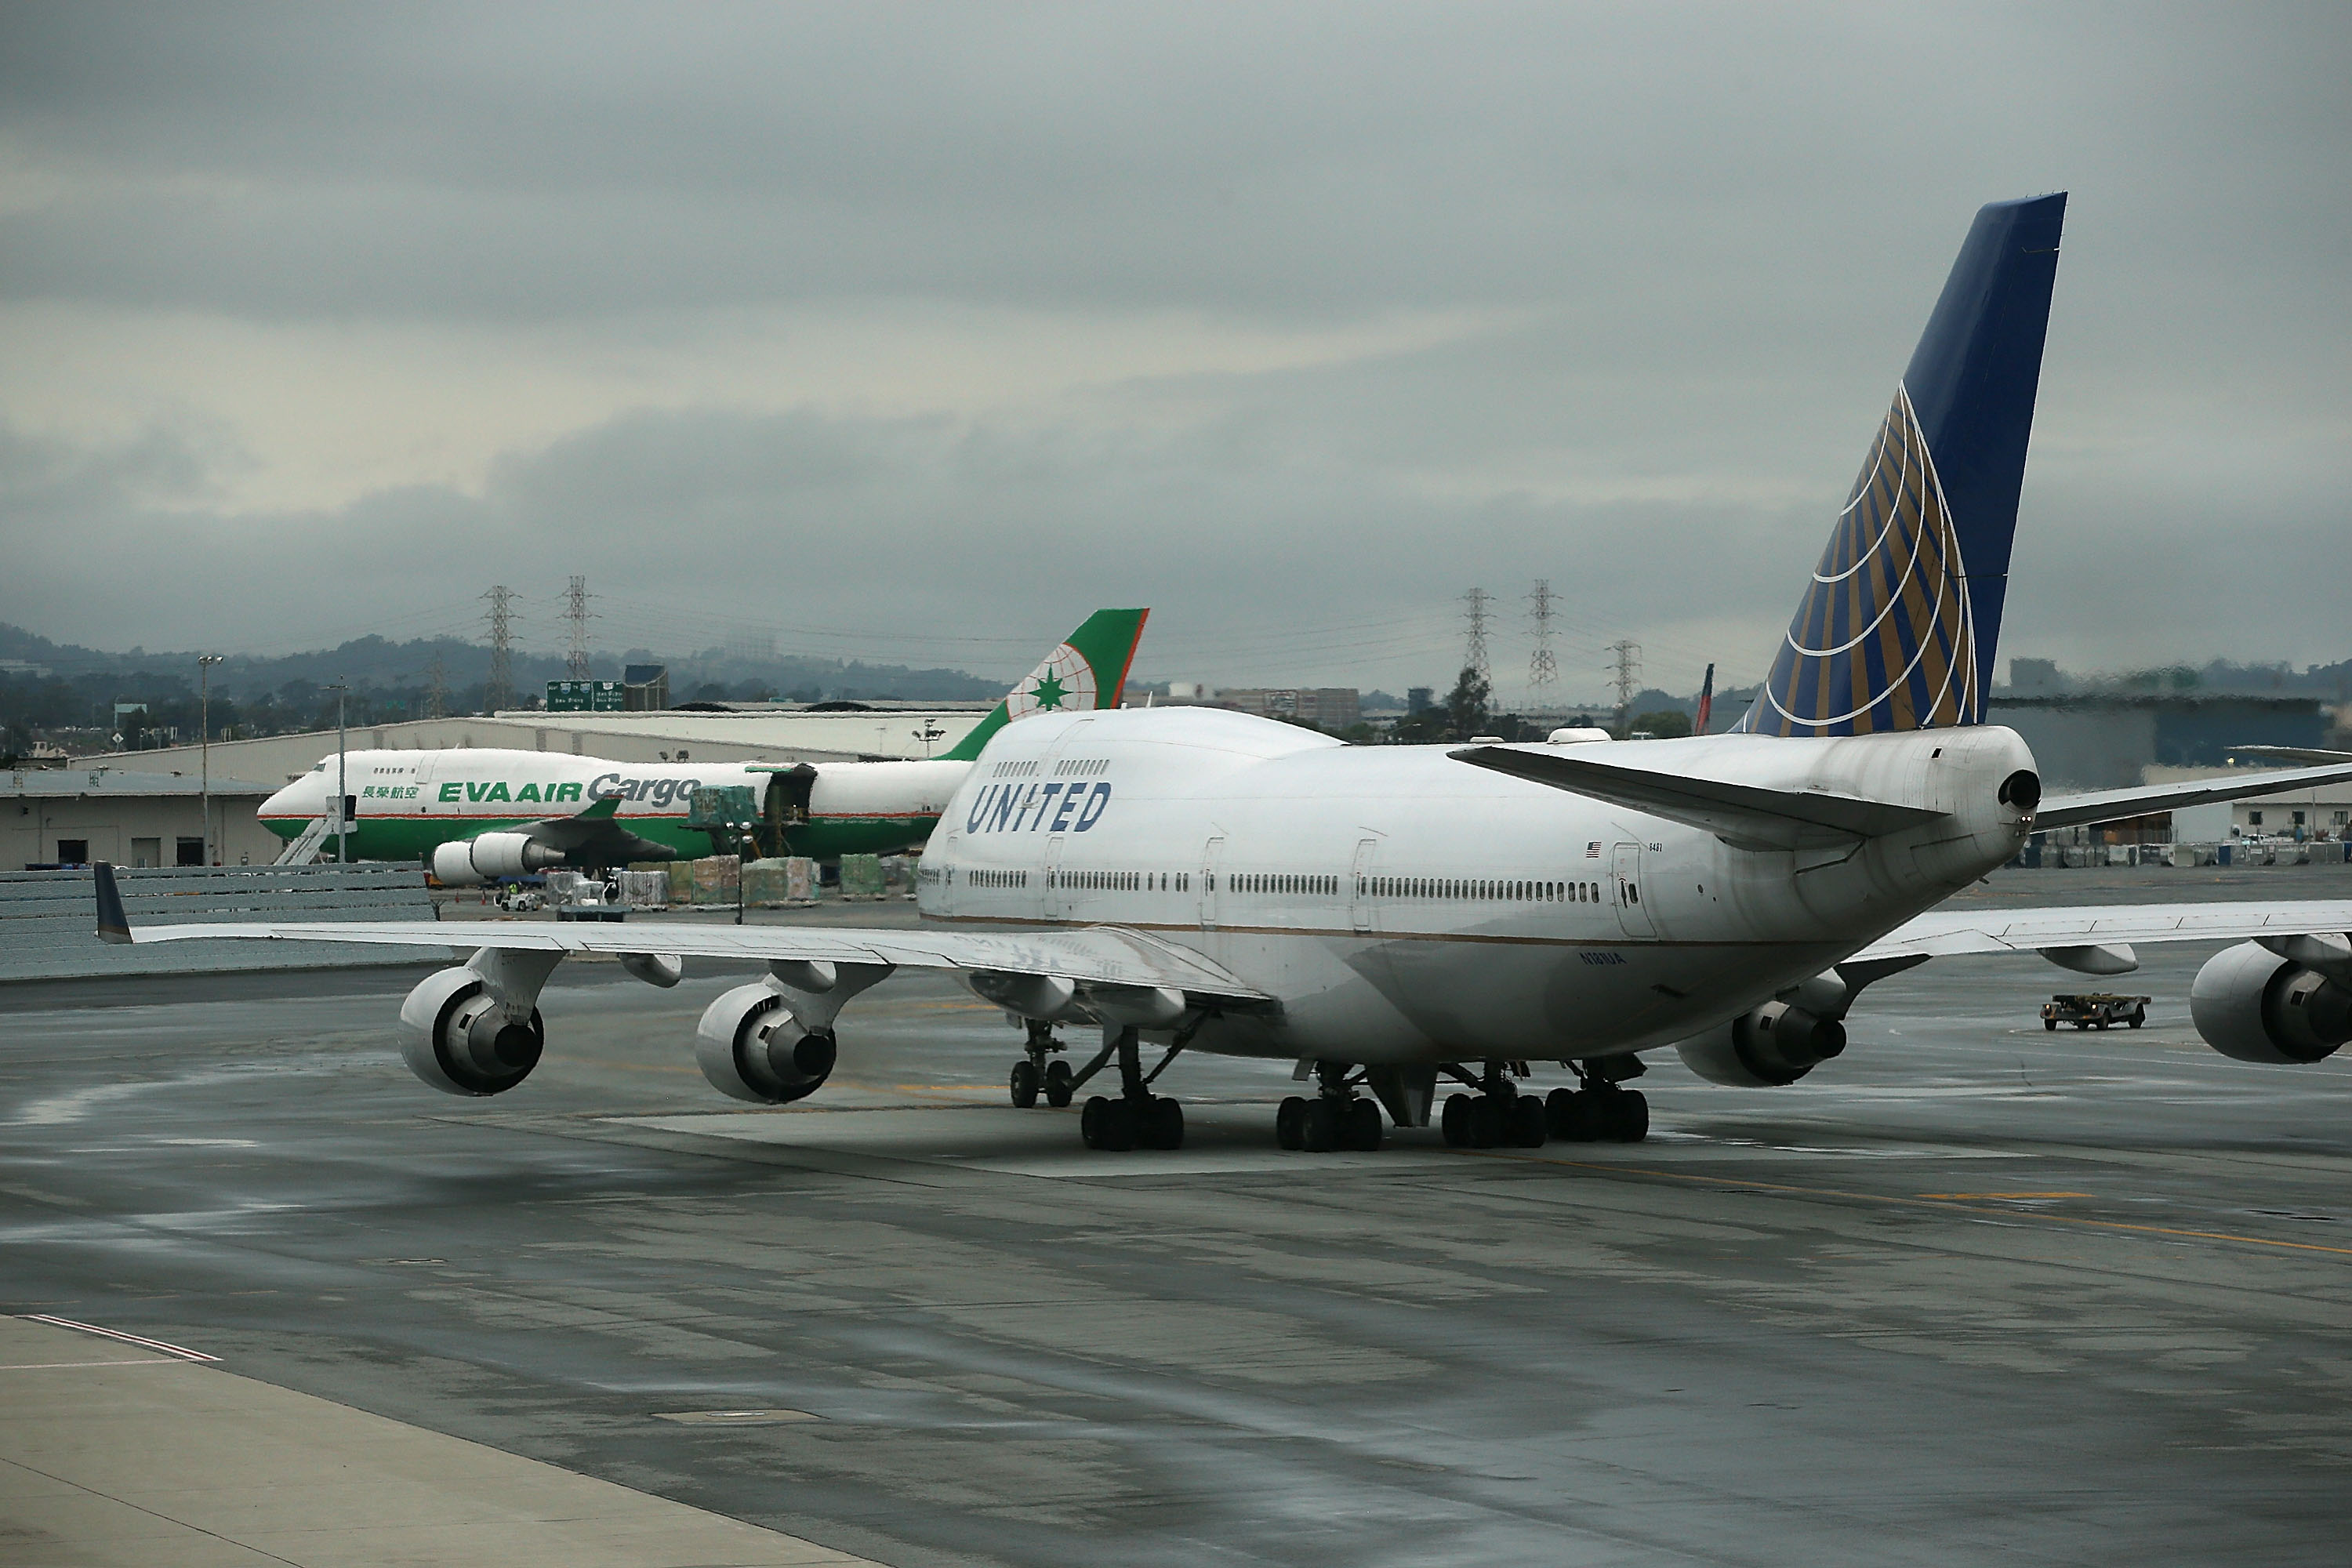 EPA To Regulate Greenhouse Gas Emissions From Airplanes